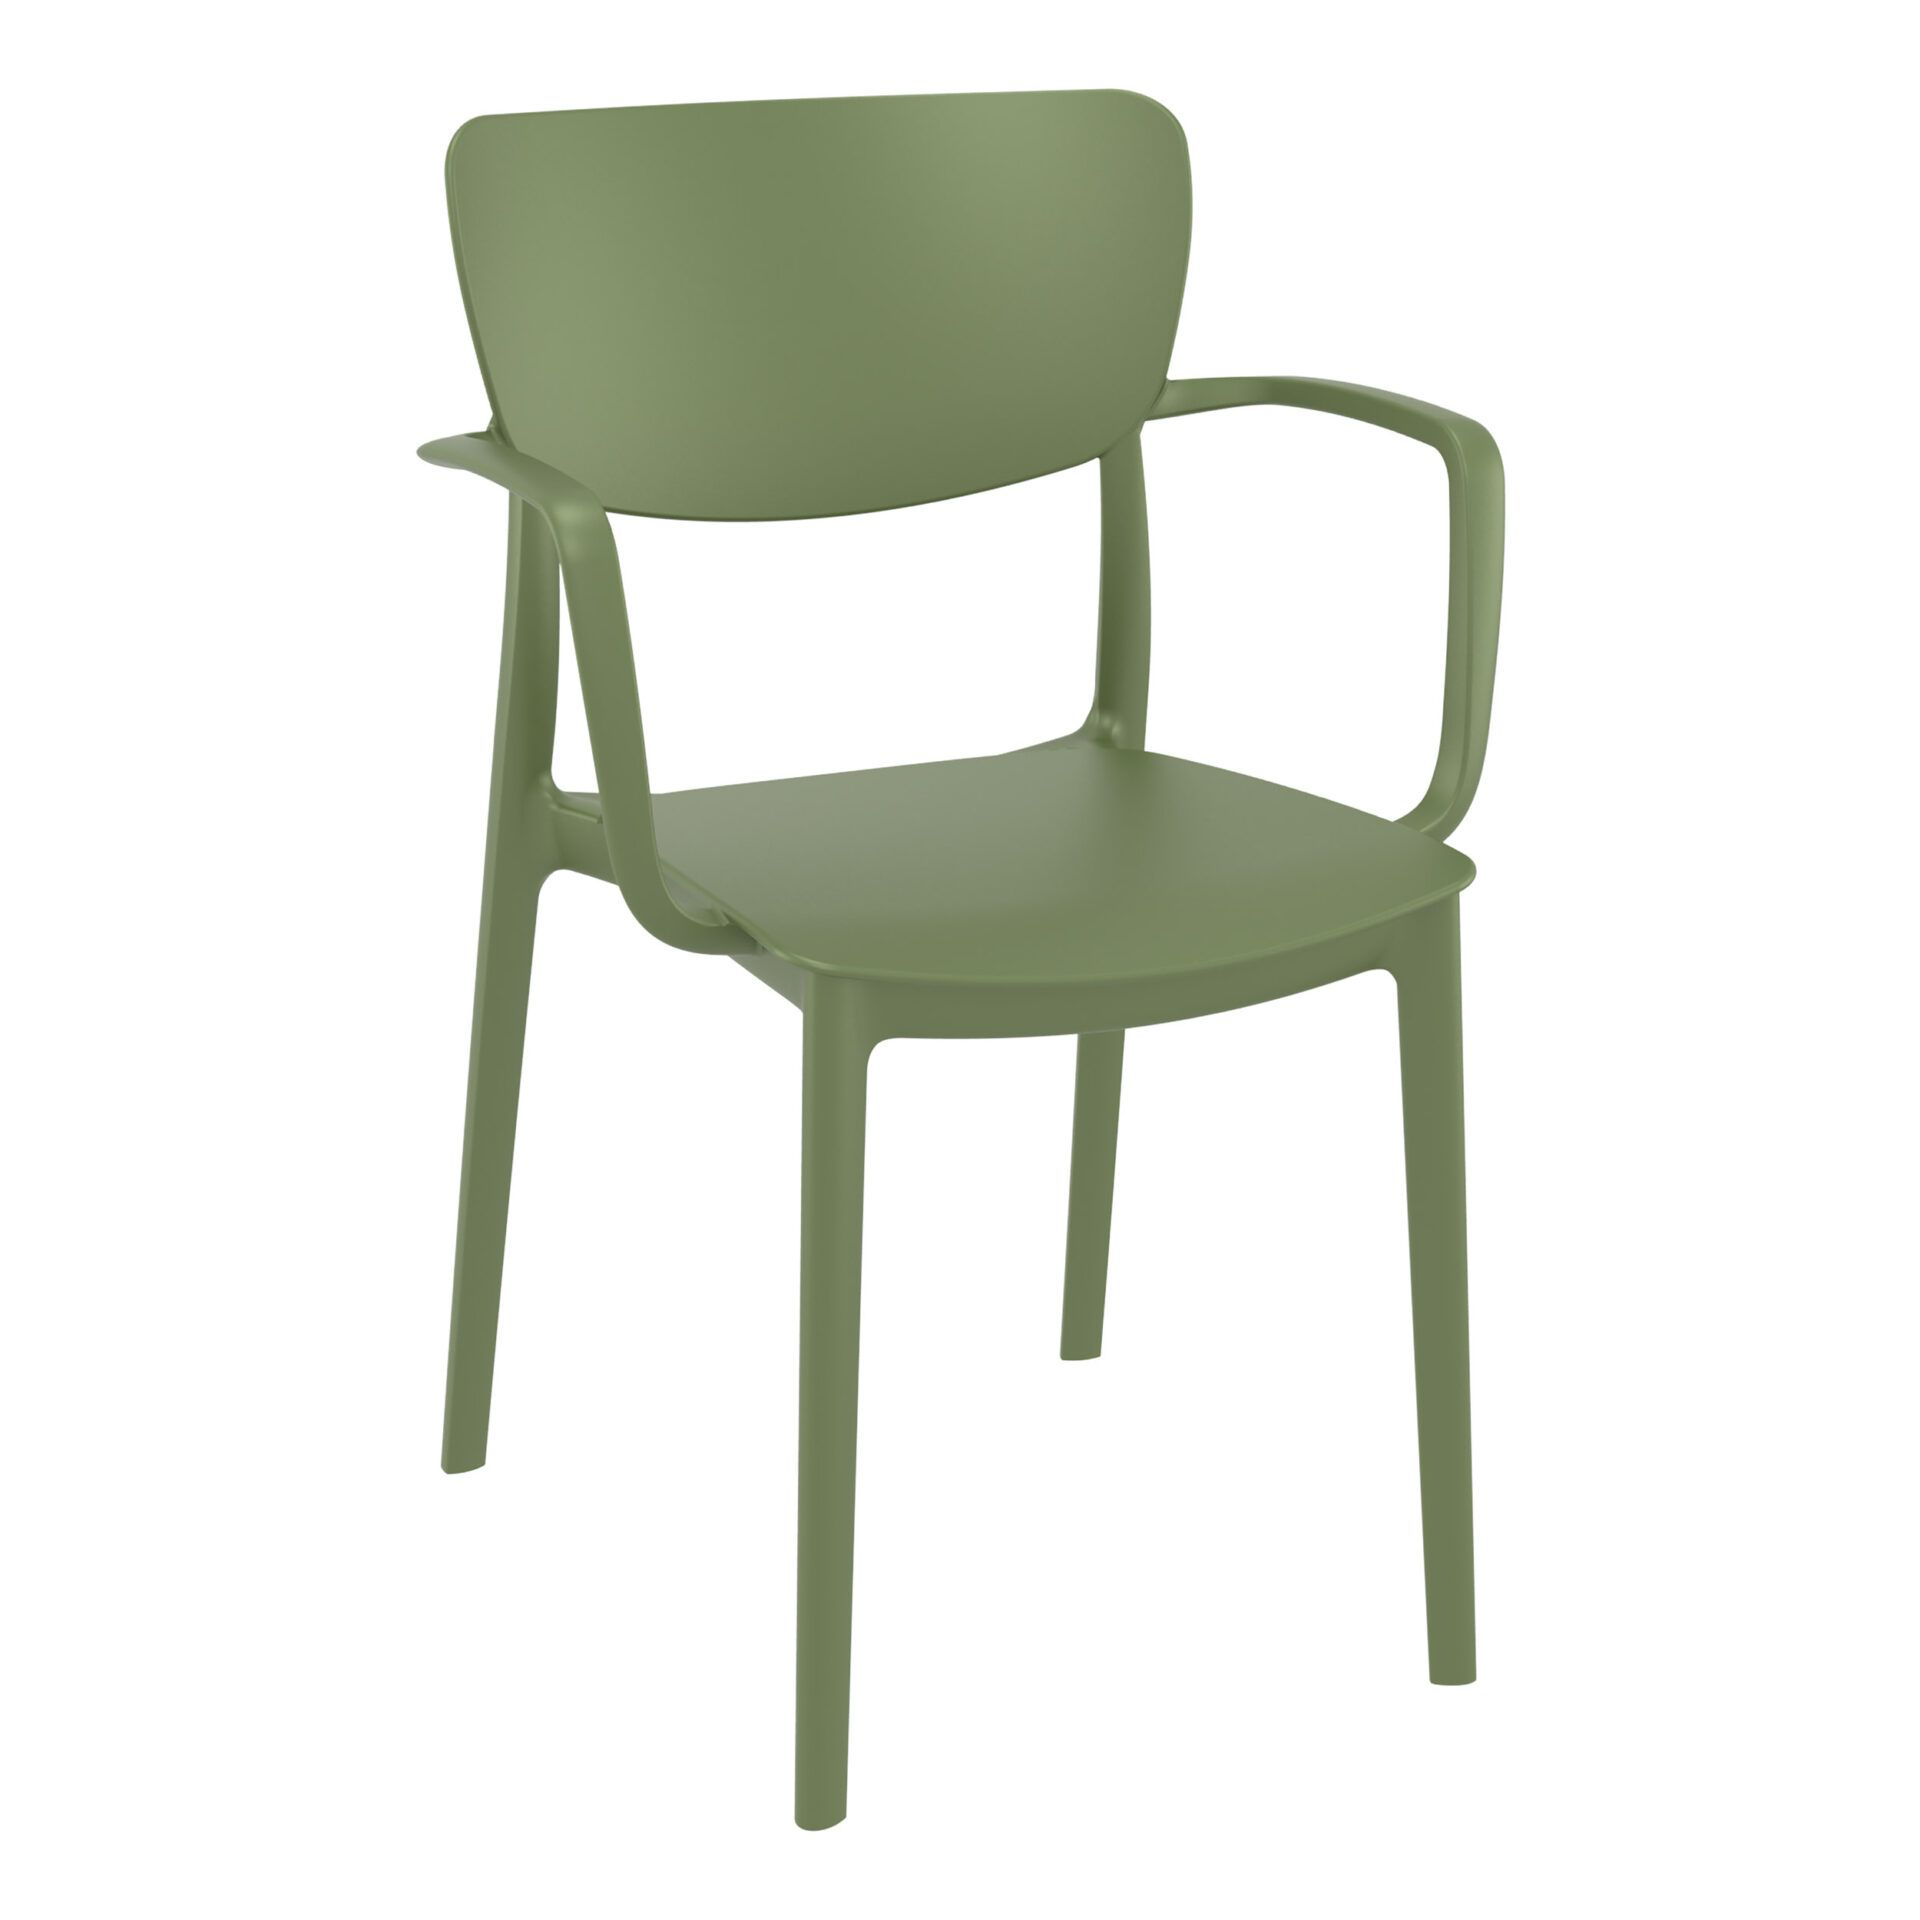 polypropylene hospitality seating lisa armchair olive green front side